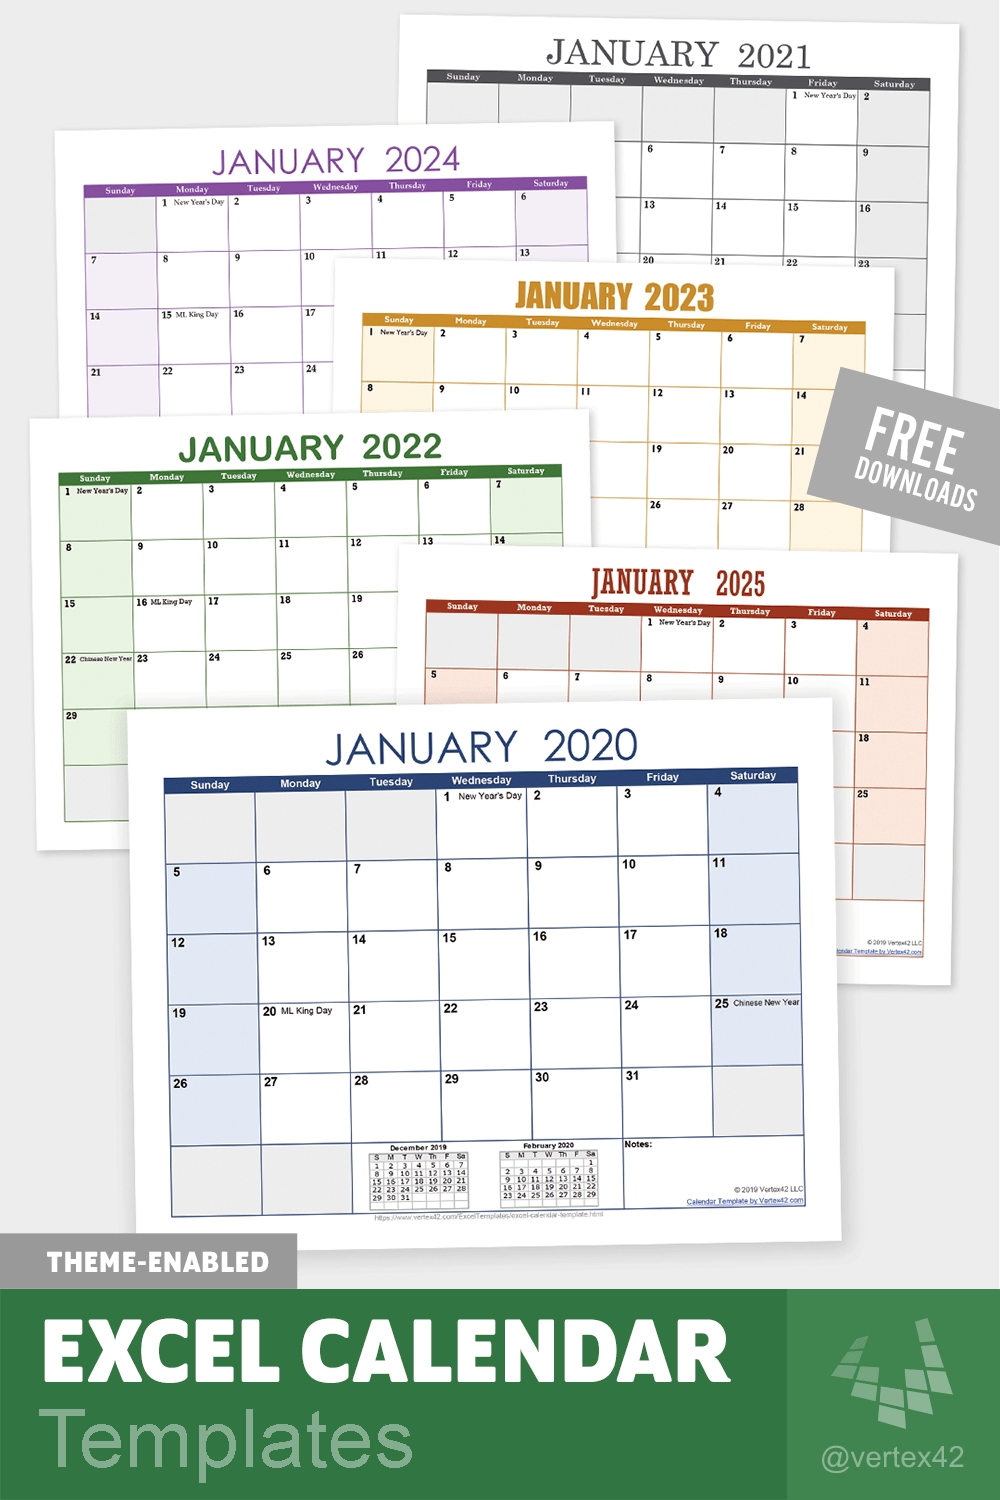 Excel Calendar Templates | Excel Calendar Template, Excel